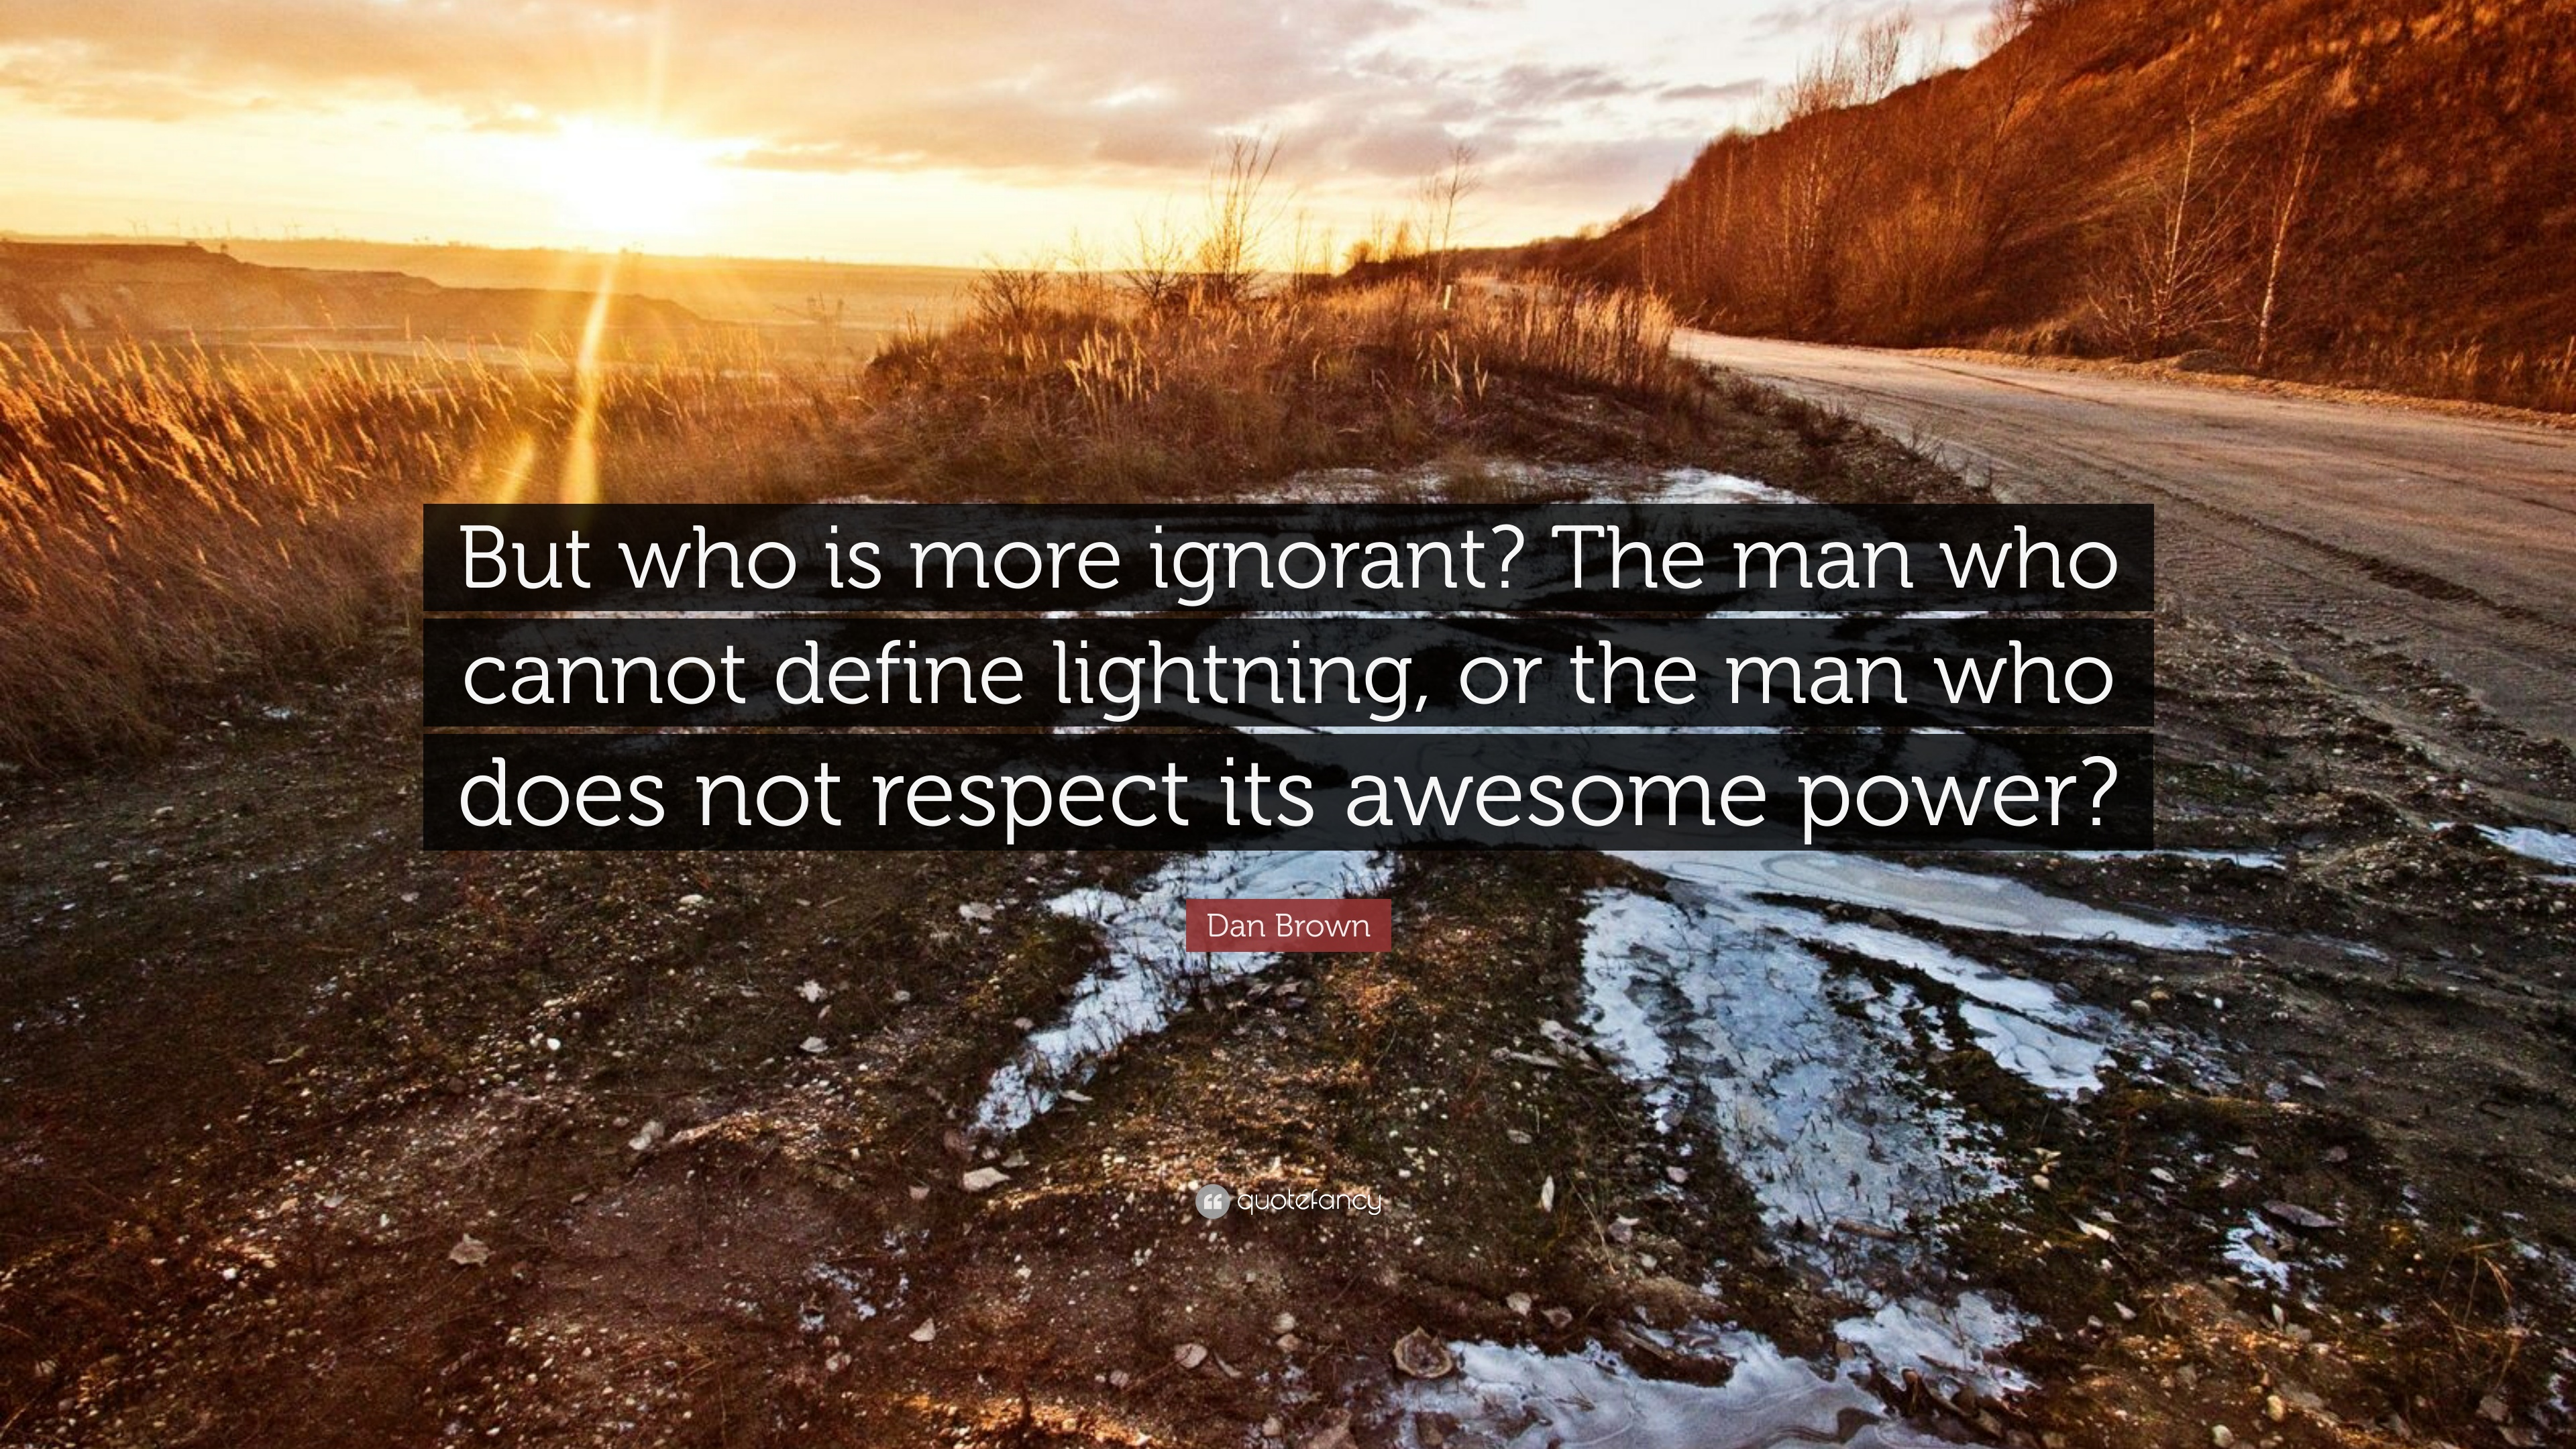 Dan Brown Quote: U201cBut Who Is More Ignorant? The Man Who Cannot Define